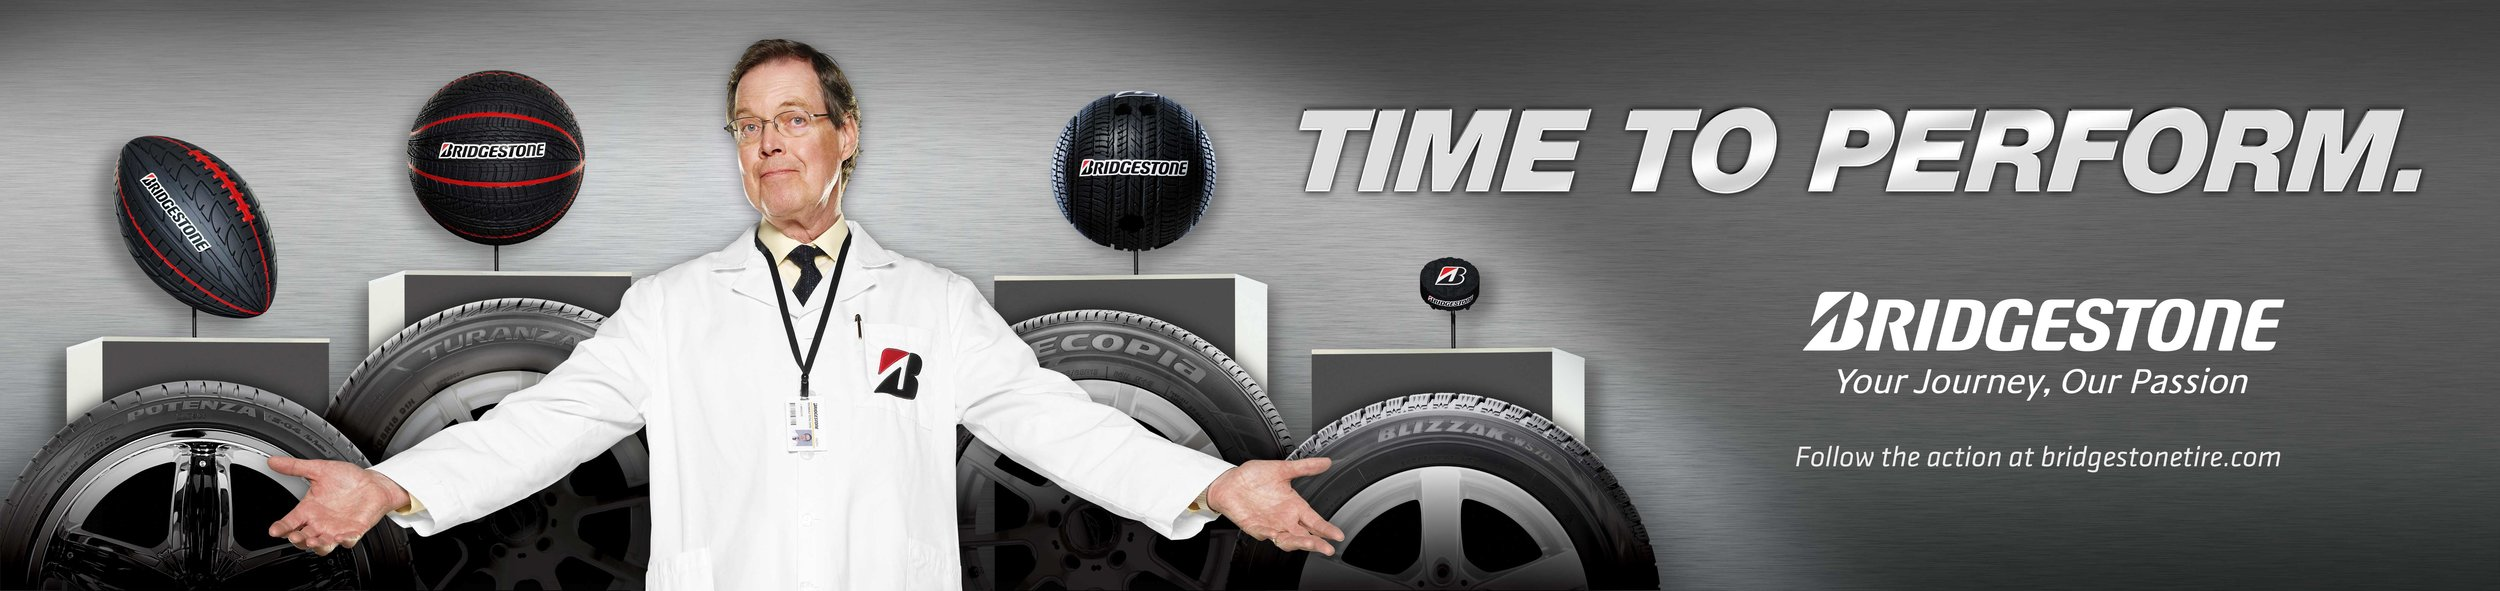 Mark DeLong - Commercial Photography - Different sports balls displayed over tires with a man in a white coat standing with his arms open.